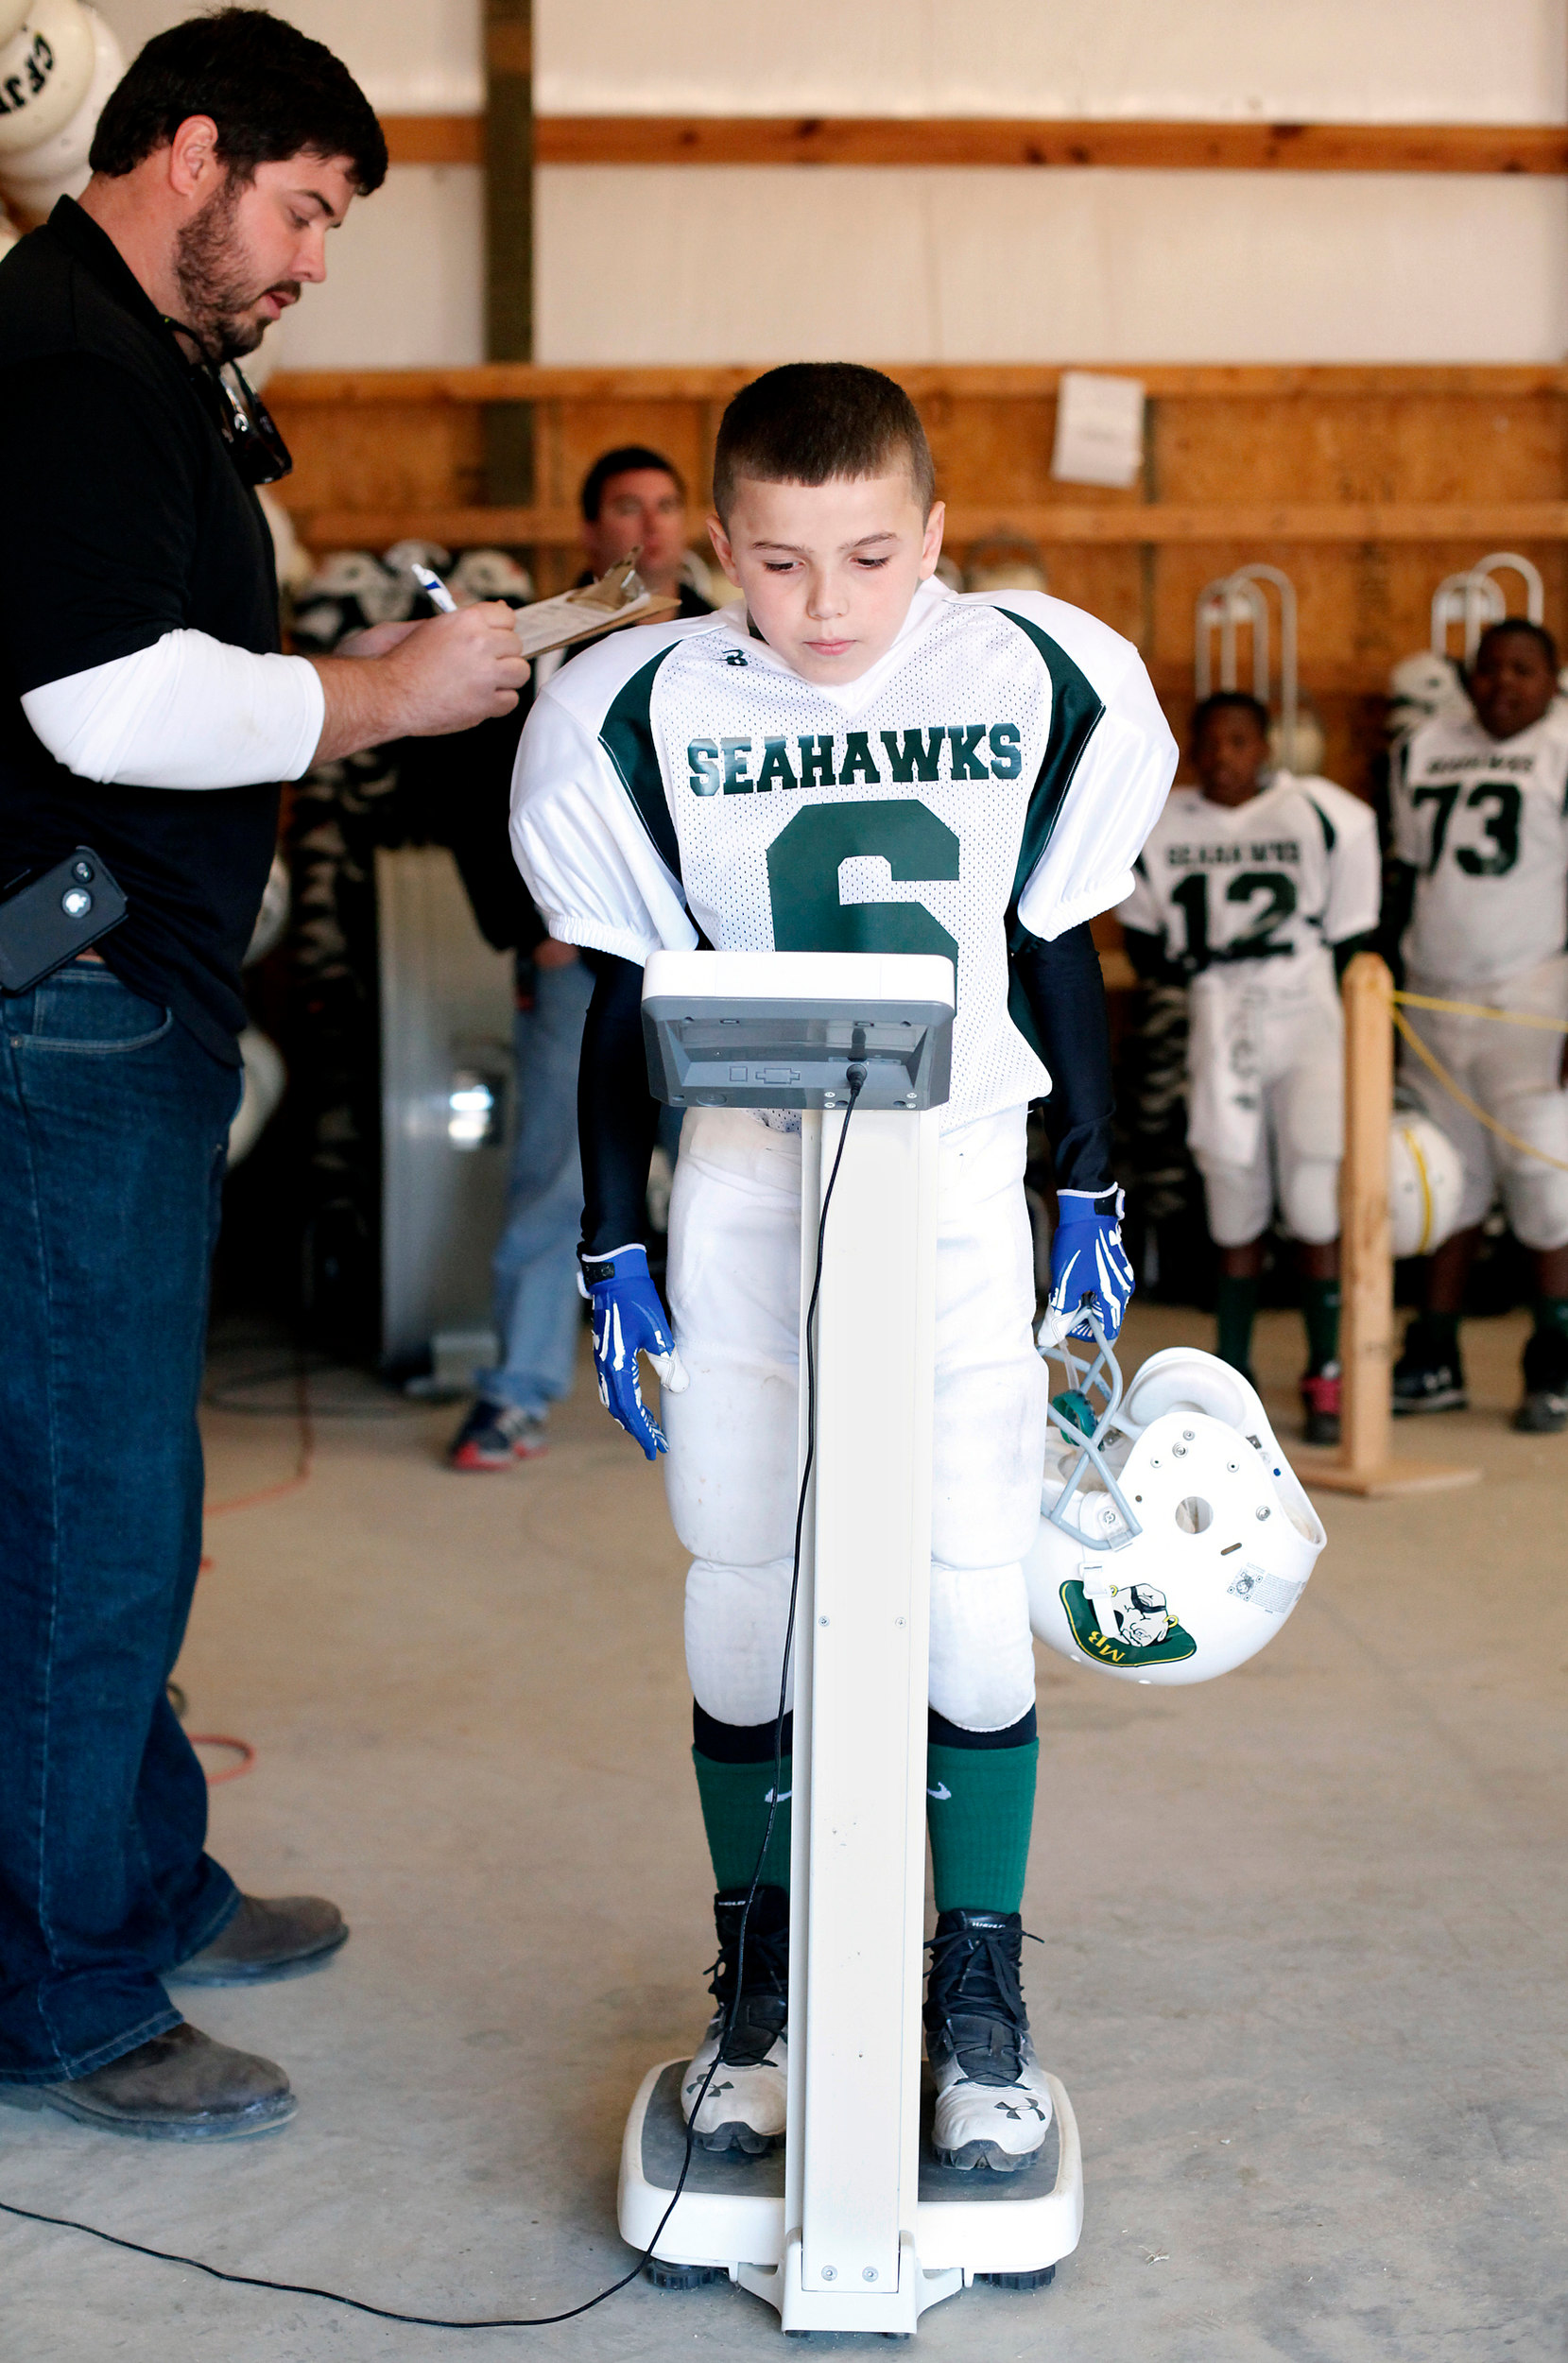 The Myrtle Beach Seahawks' Anthony Aponte, 10, has his weight checked by Matt Watts (left) on Saturday, Nov. 15, 2014, at Freedom Florence Recreational Complex.